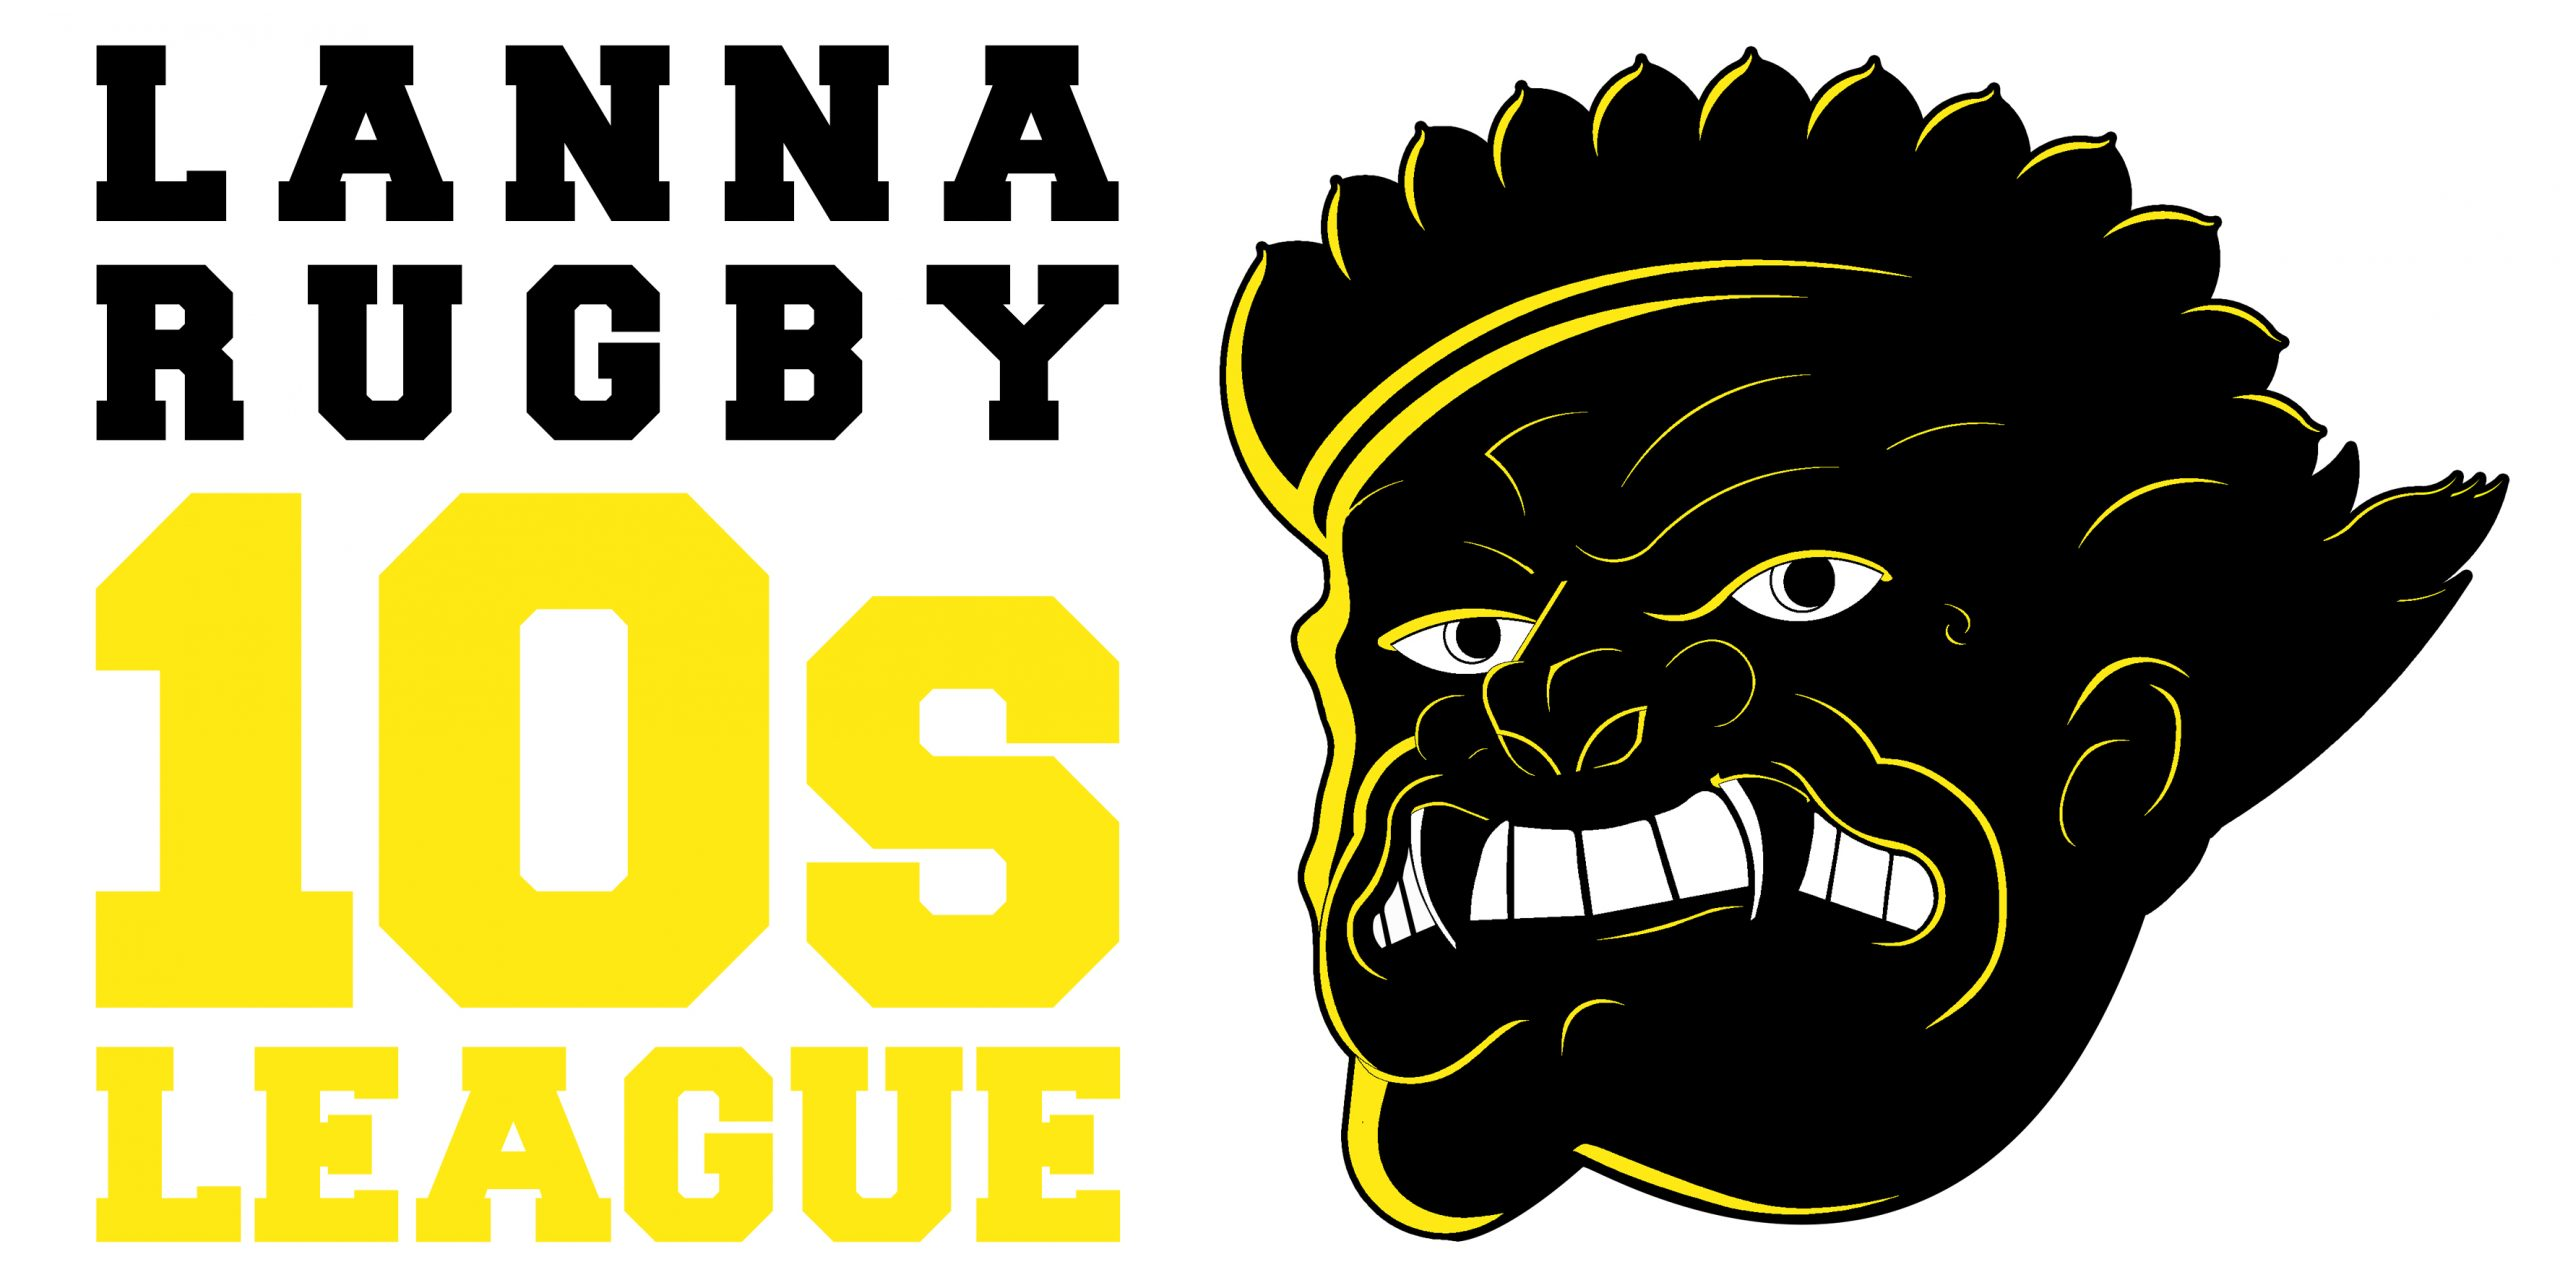 lanna rugby tens league